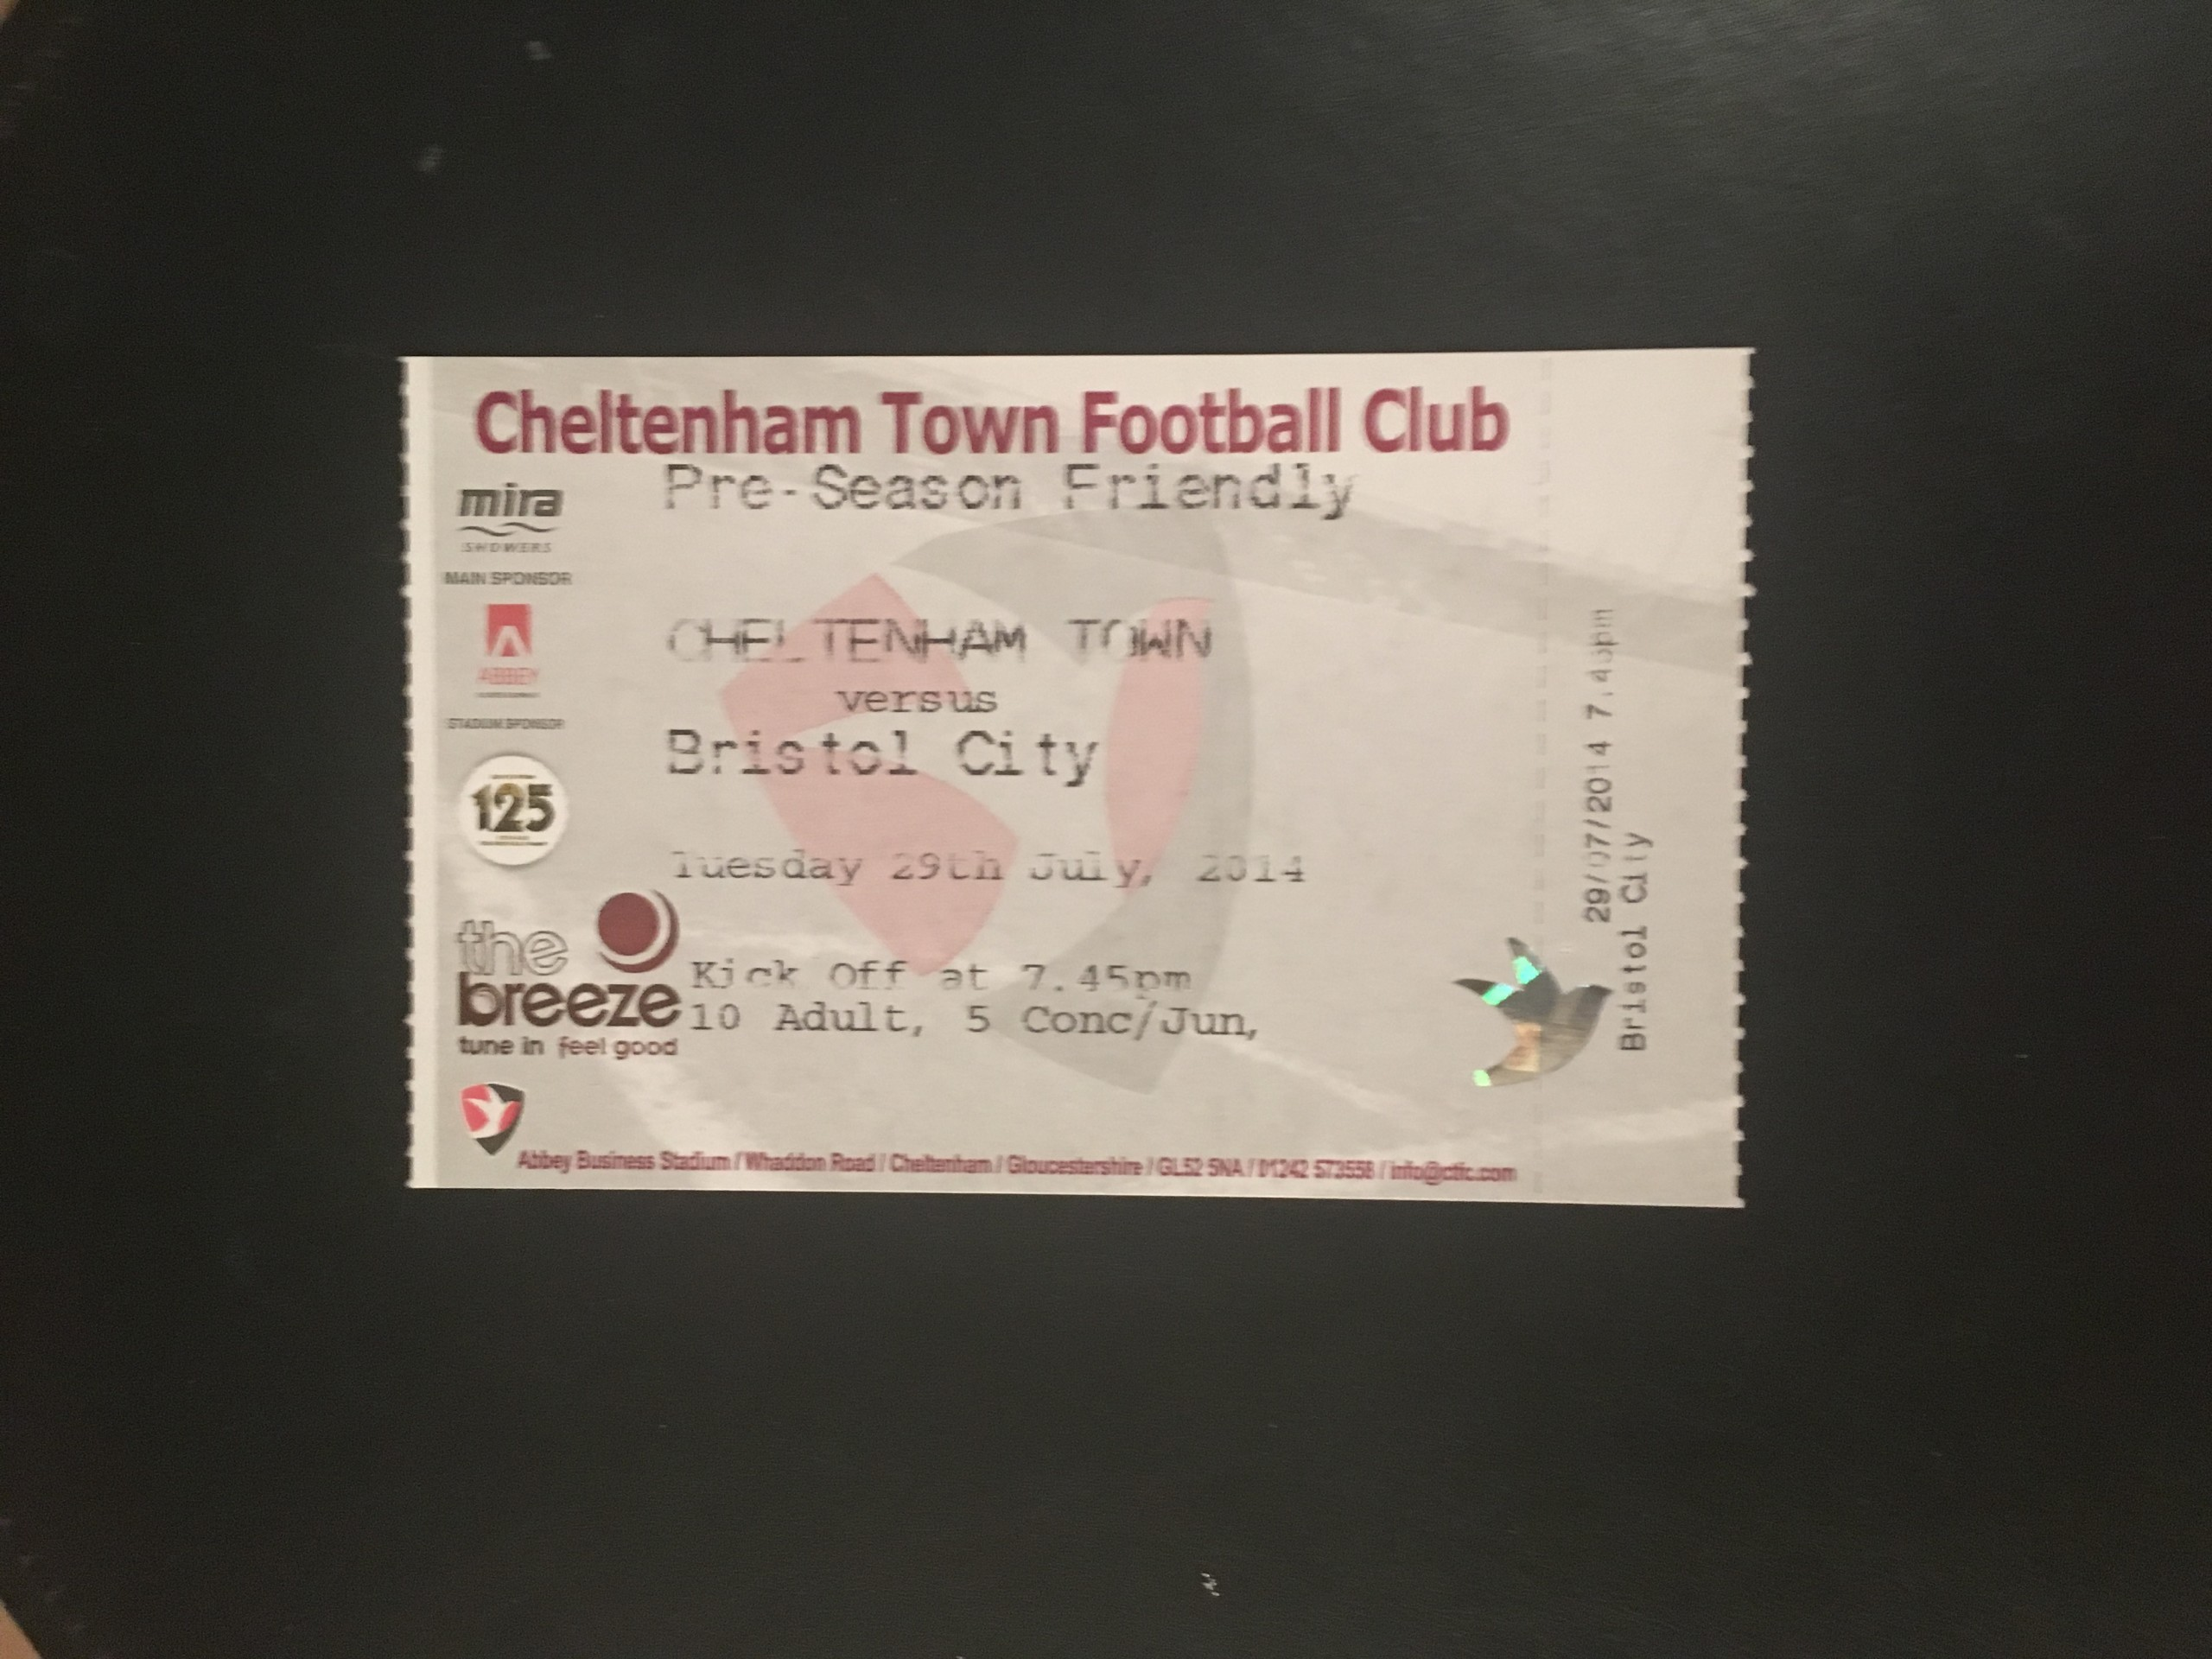 Cheltenham Town v Bristol City 29-07-2014 Ticket